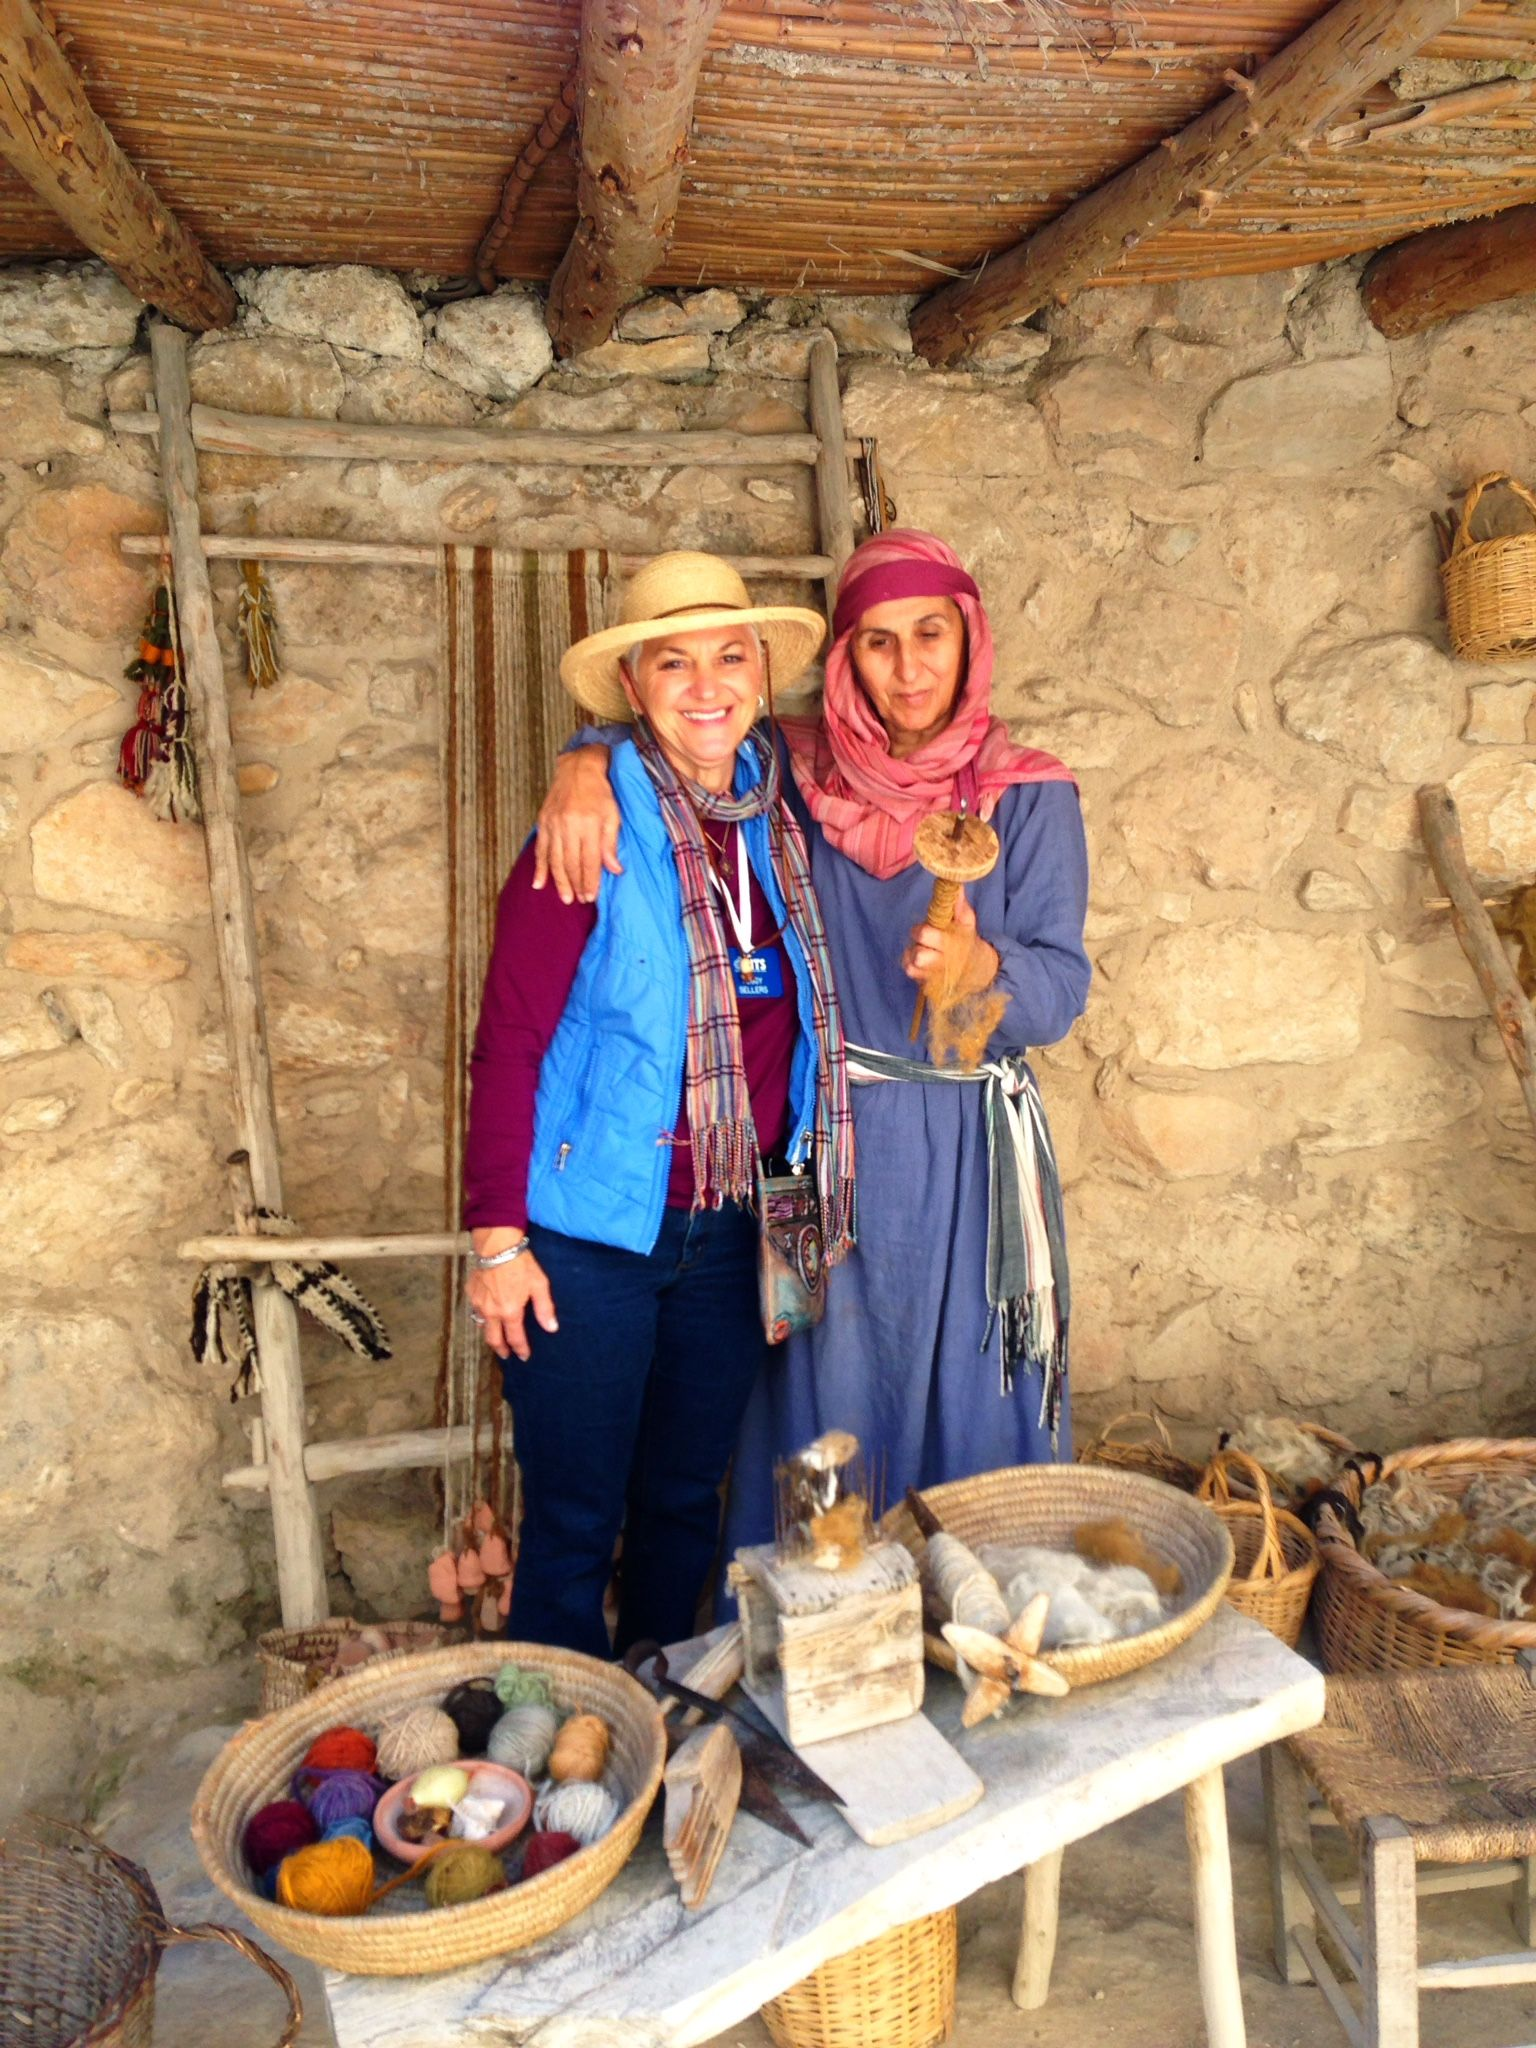 Meet Mary, my Arab Christian friend who volunteers at the